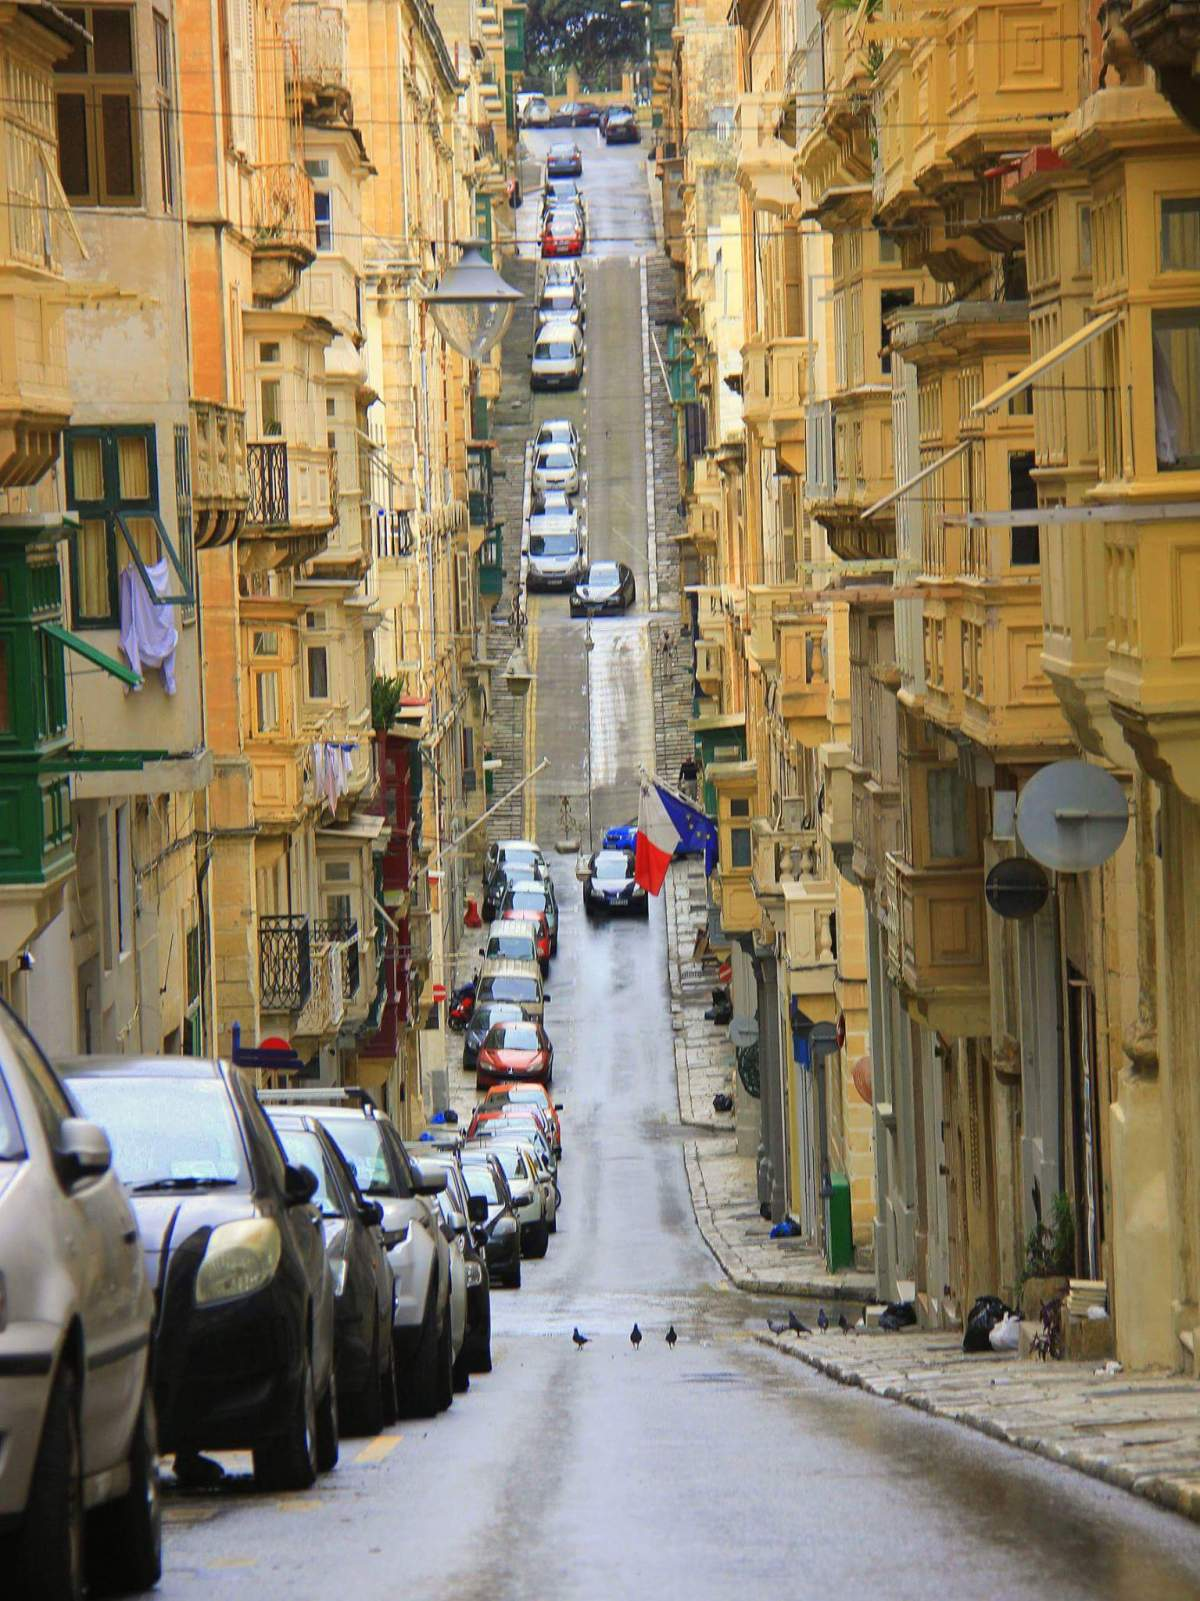 Valletta is not to be missed when you visit Malta